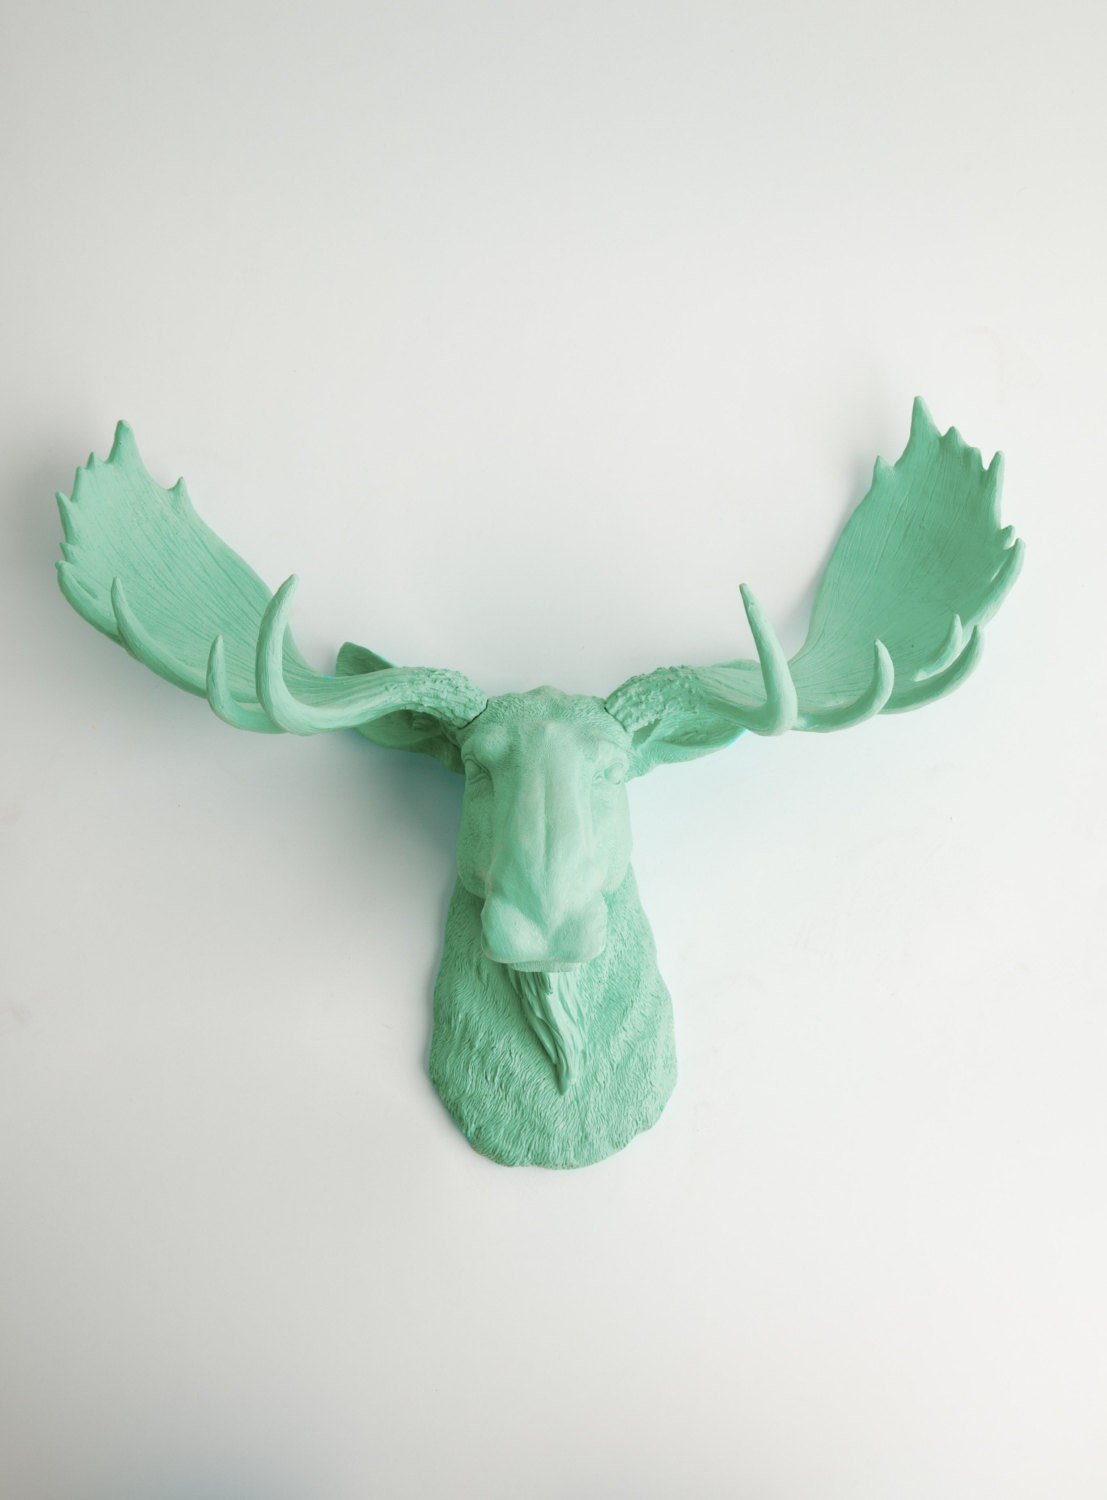 Moose head wall mount the albany seafoam resin chic wall - Fake moose head mount ...